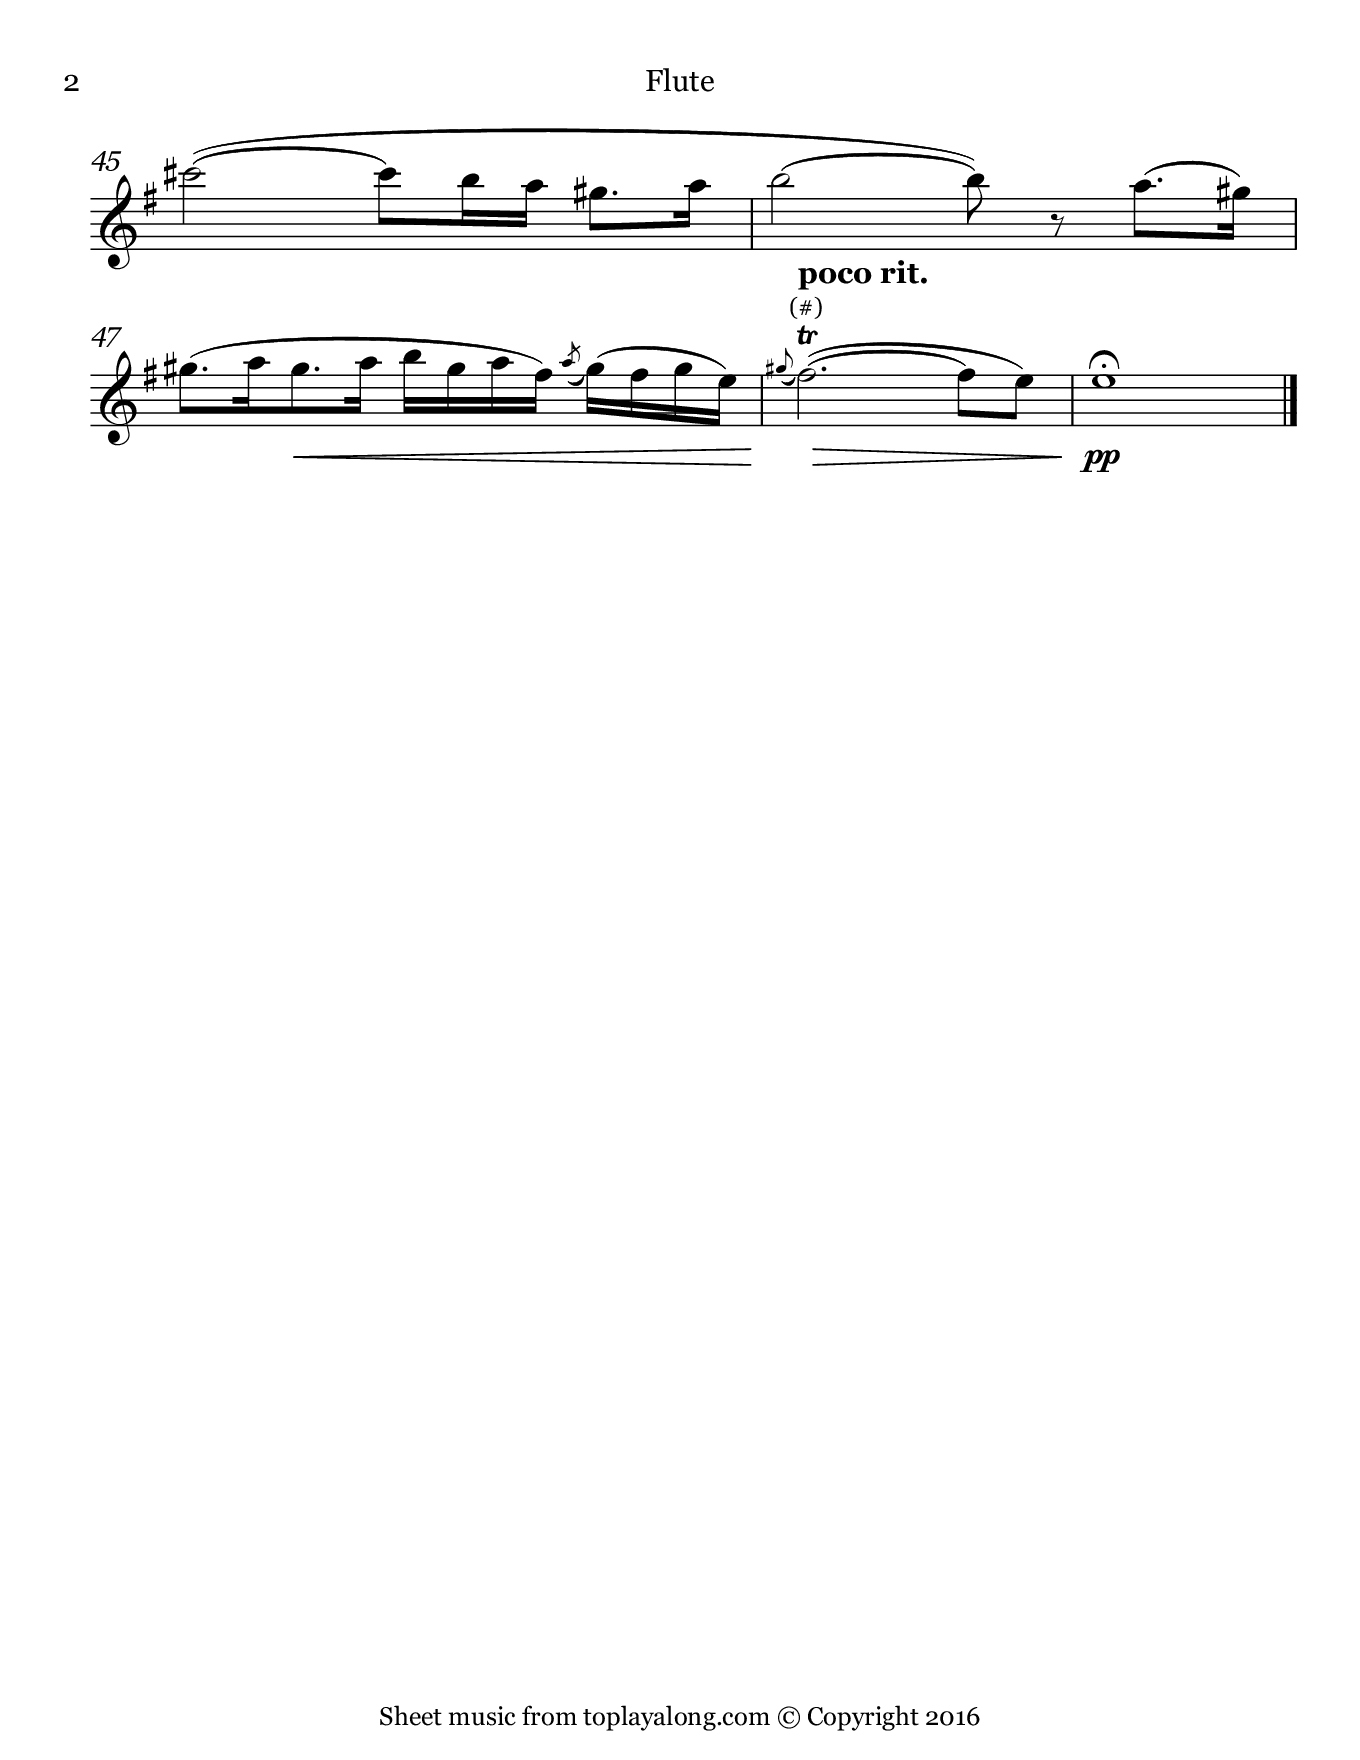 Amarilli, mia bella by Caccini. Sheet music for Flute, page 2.